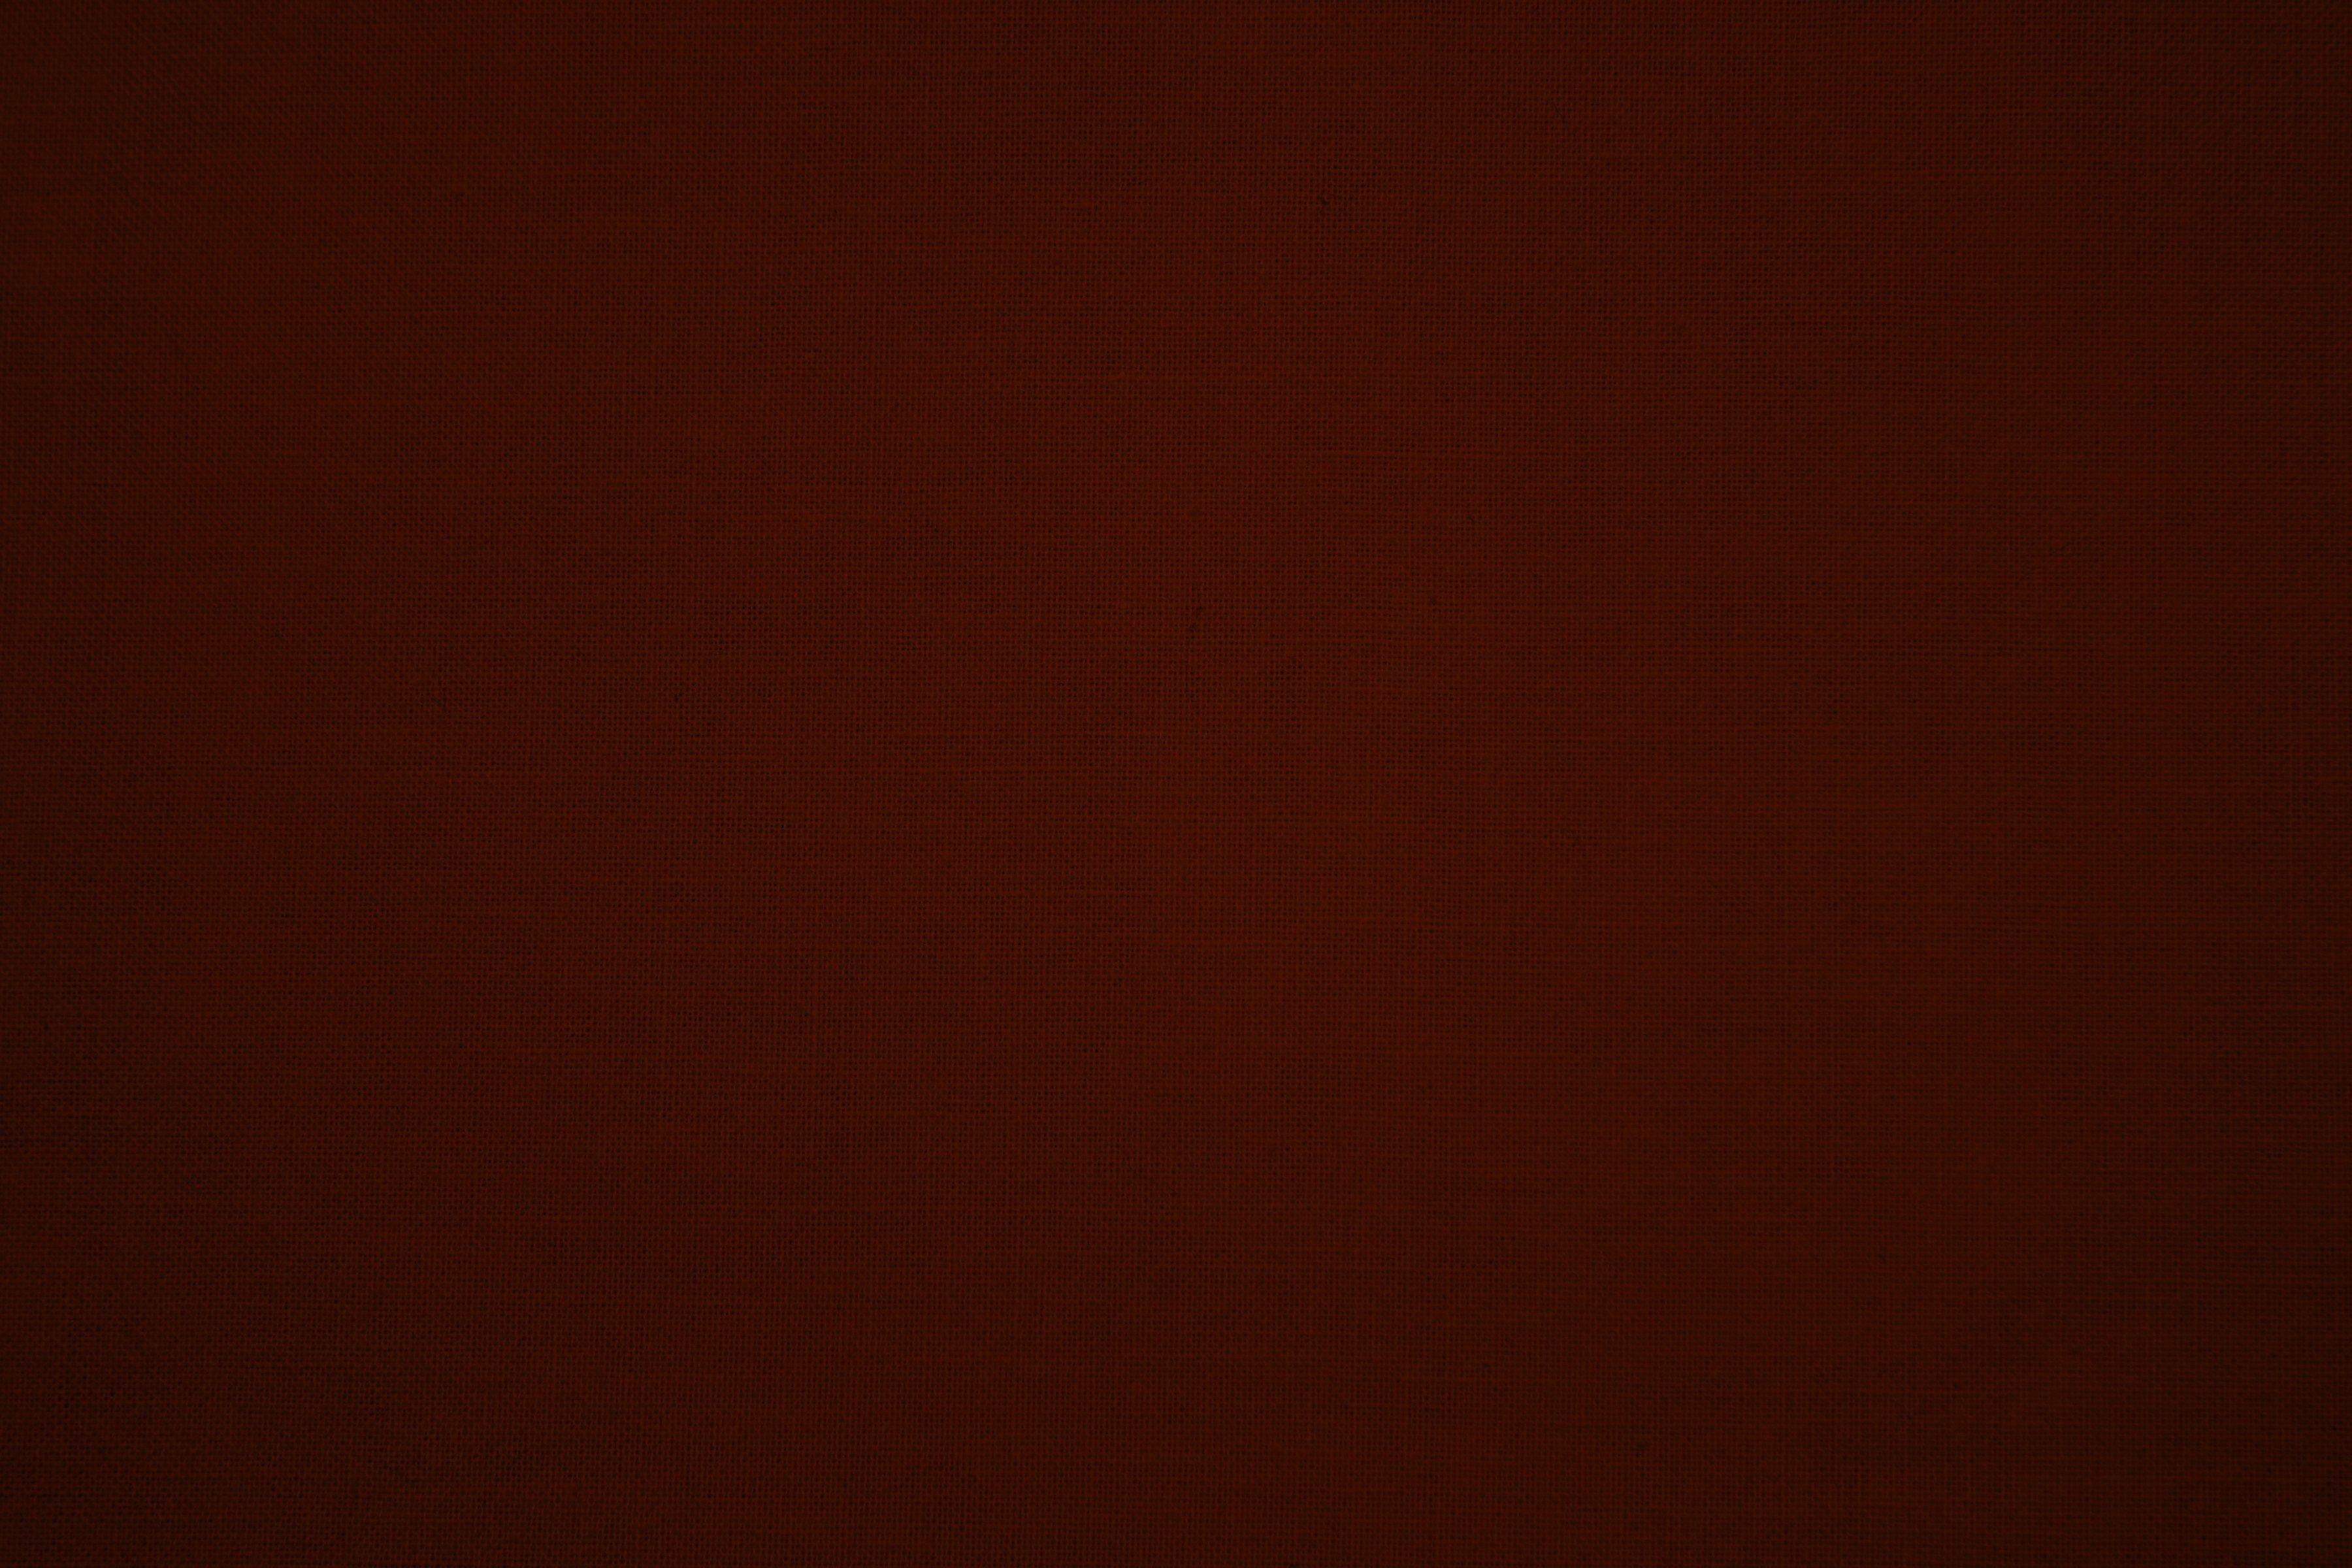 Android App Design Maroon Wallpapers Wallpaper Cave